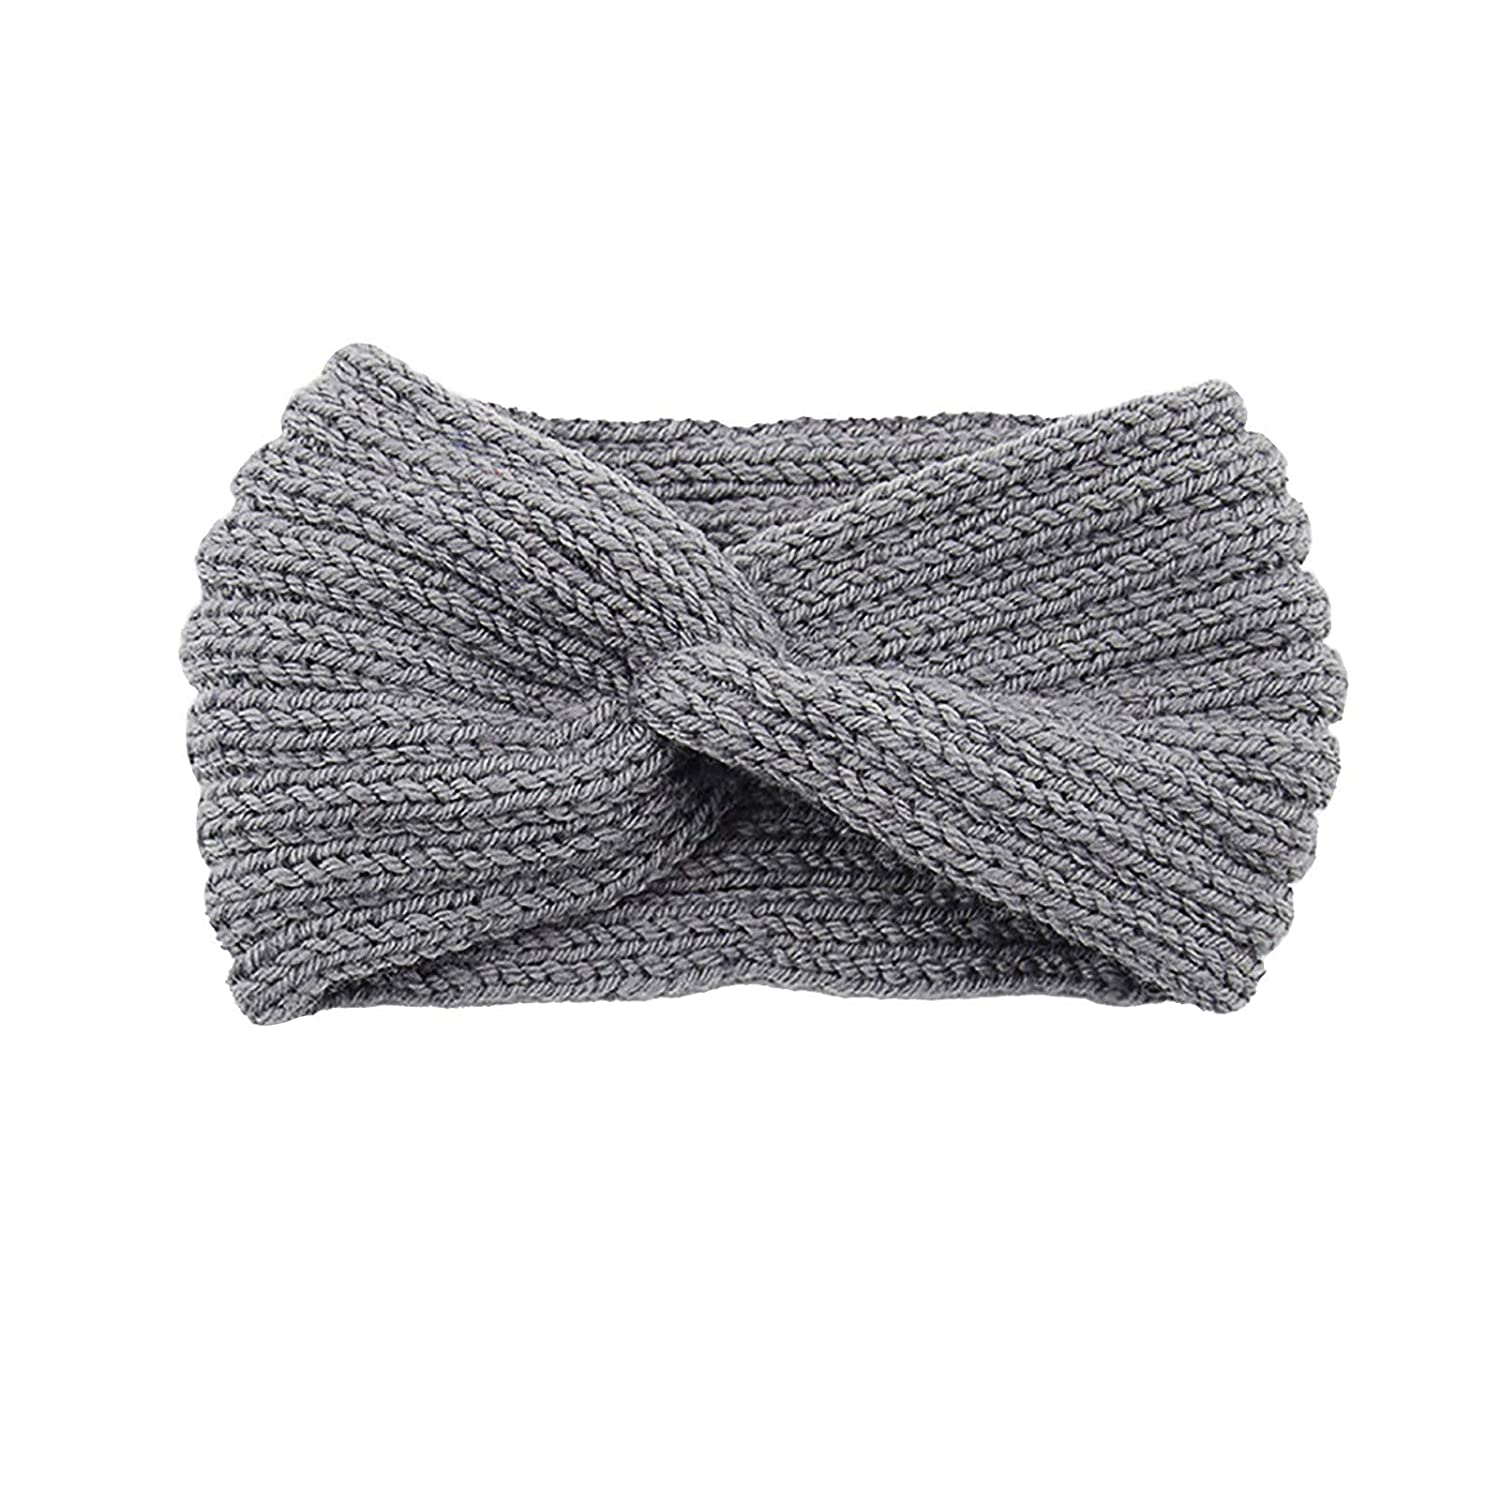 Thatso Winter Headbands for Women, Ear Warmer Headband with Buttons, Soft Stretchy Thick Cable Knitted Turban Hairband Gift (Gray,One Size)